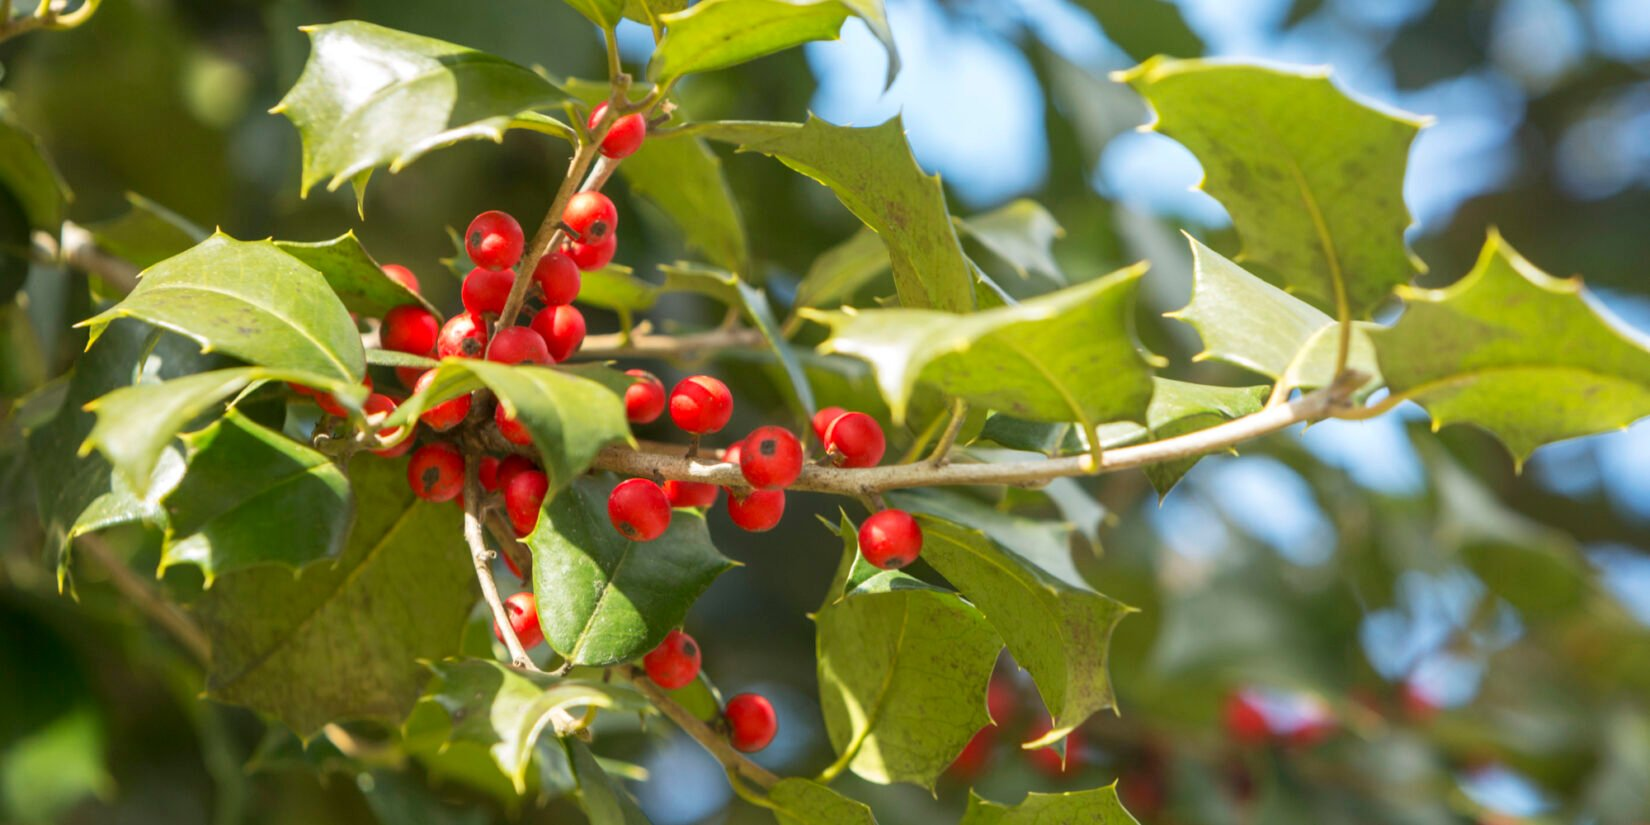 The pointed leaves and bright, red berries are featured in this close-up of an American Holly tree.